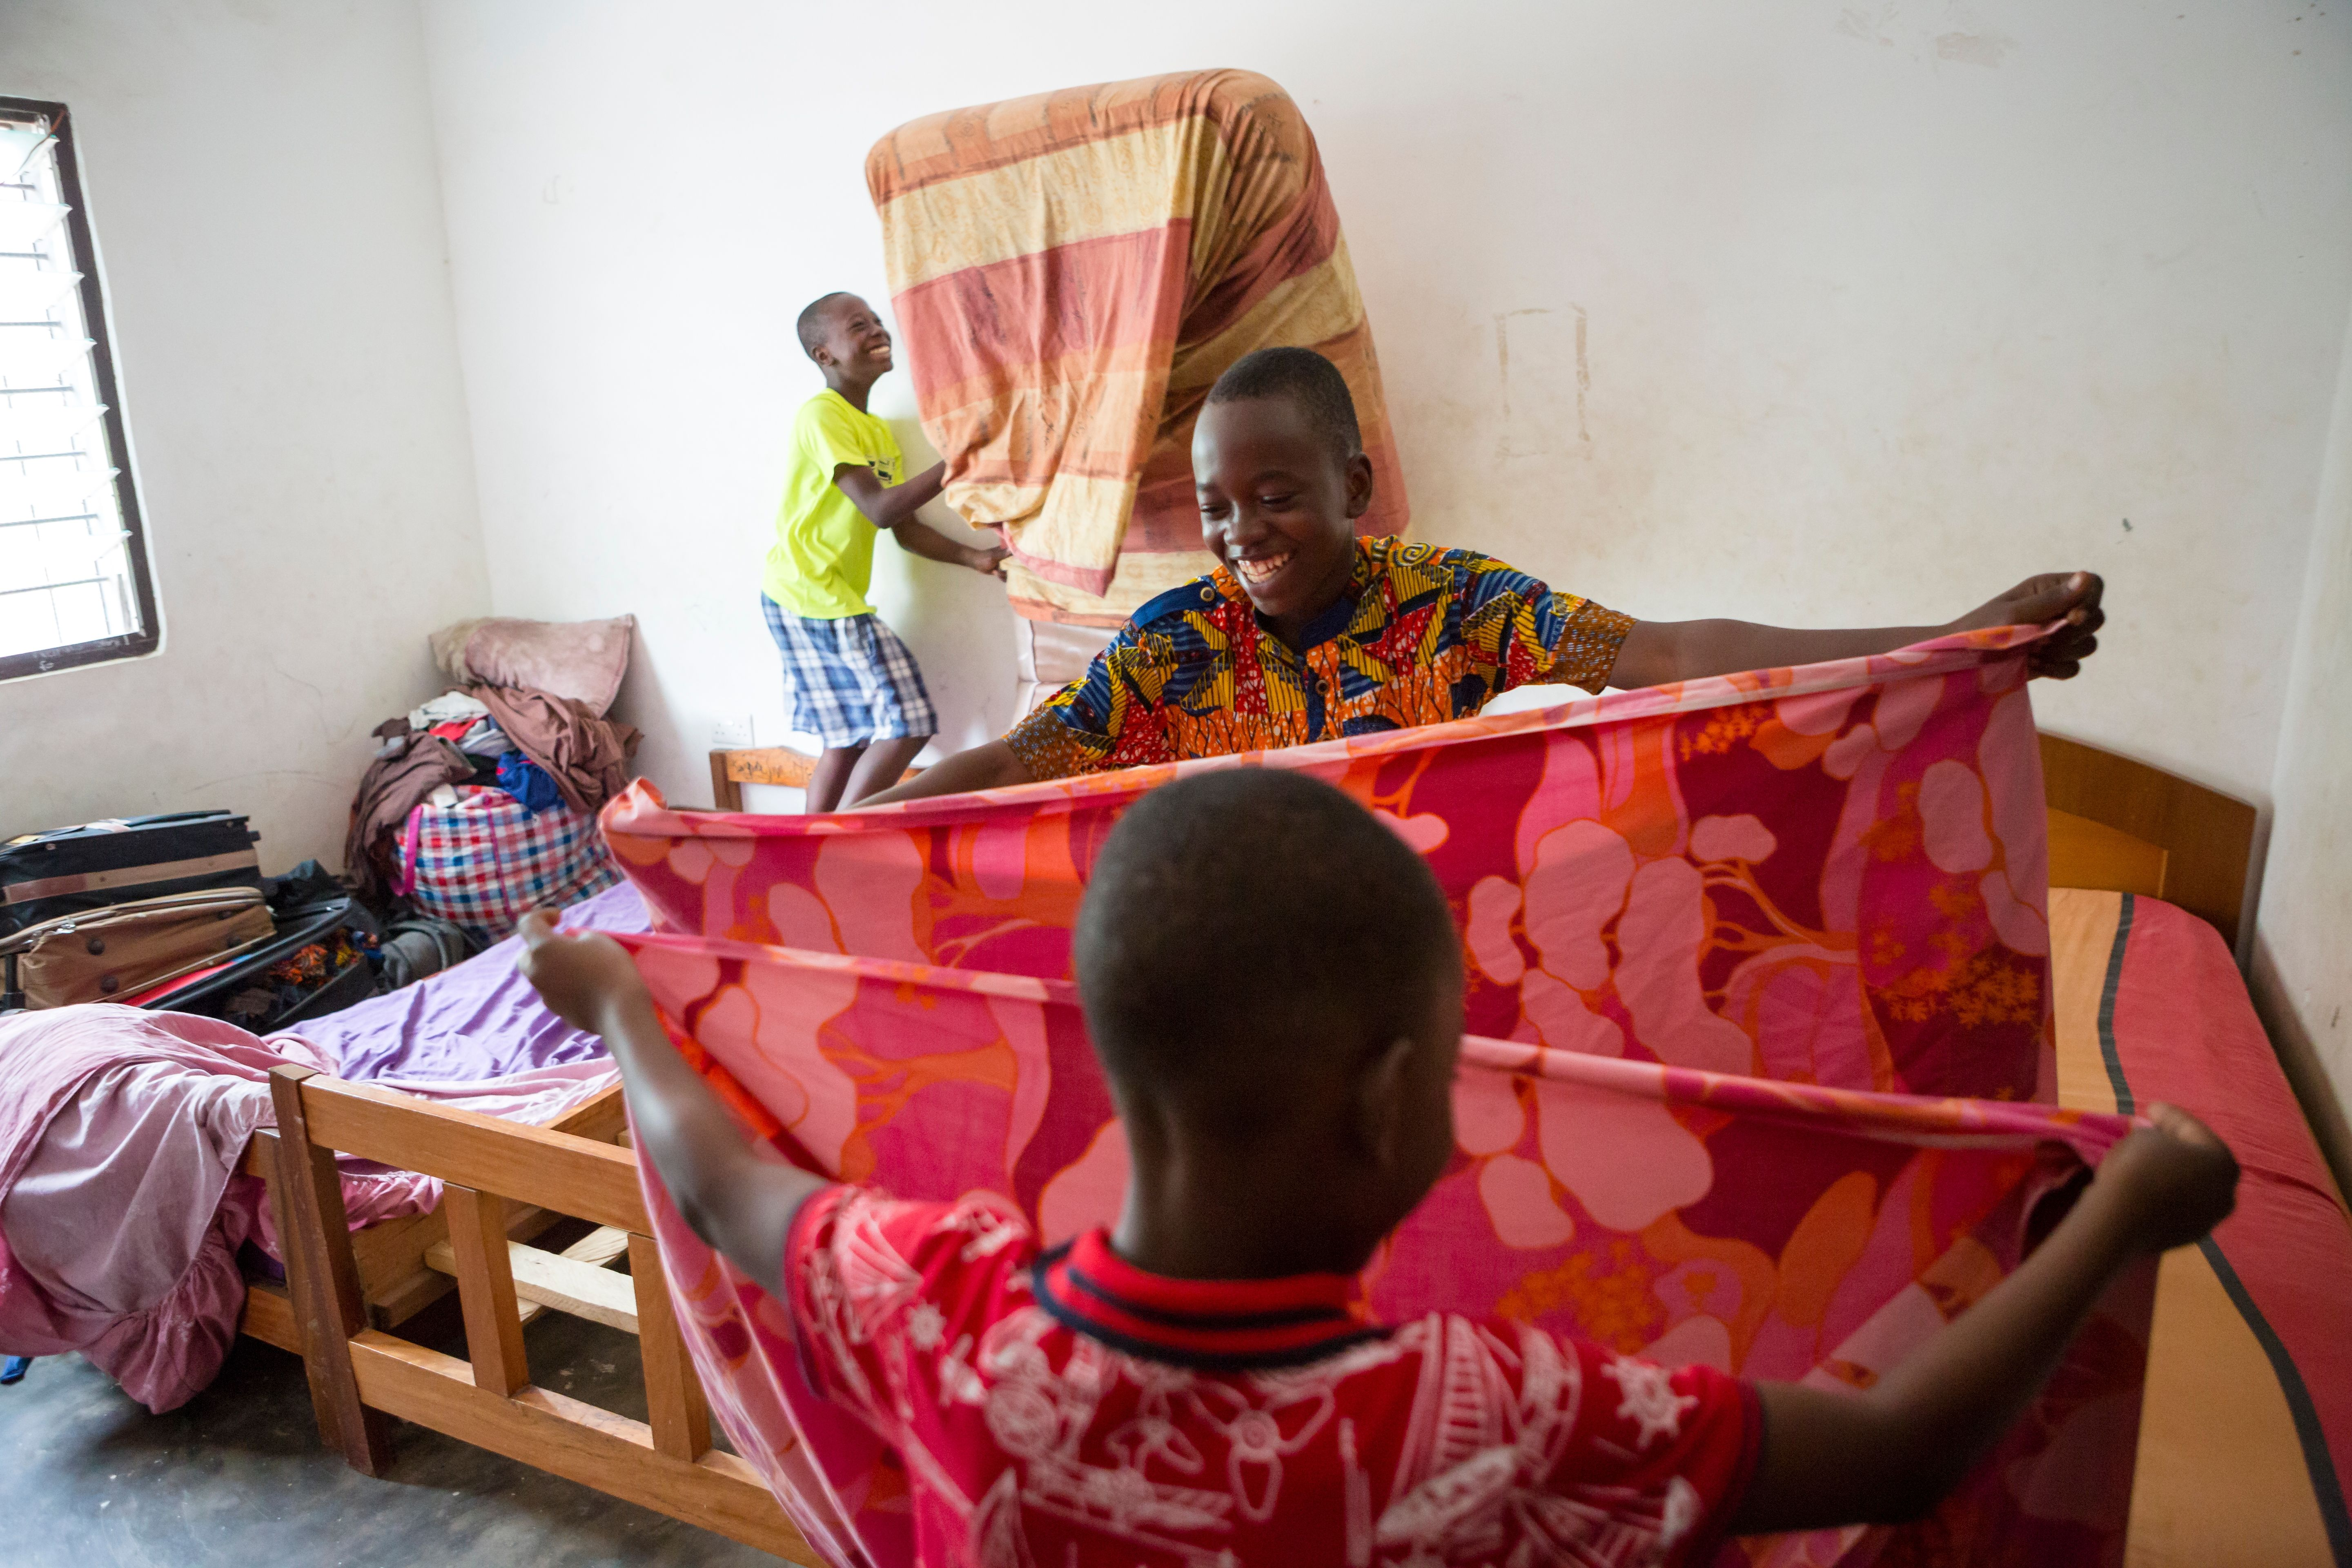 Three brothers in Ghana wearing bright clothing, helping each other with family chores by making beds and folding bedding.